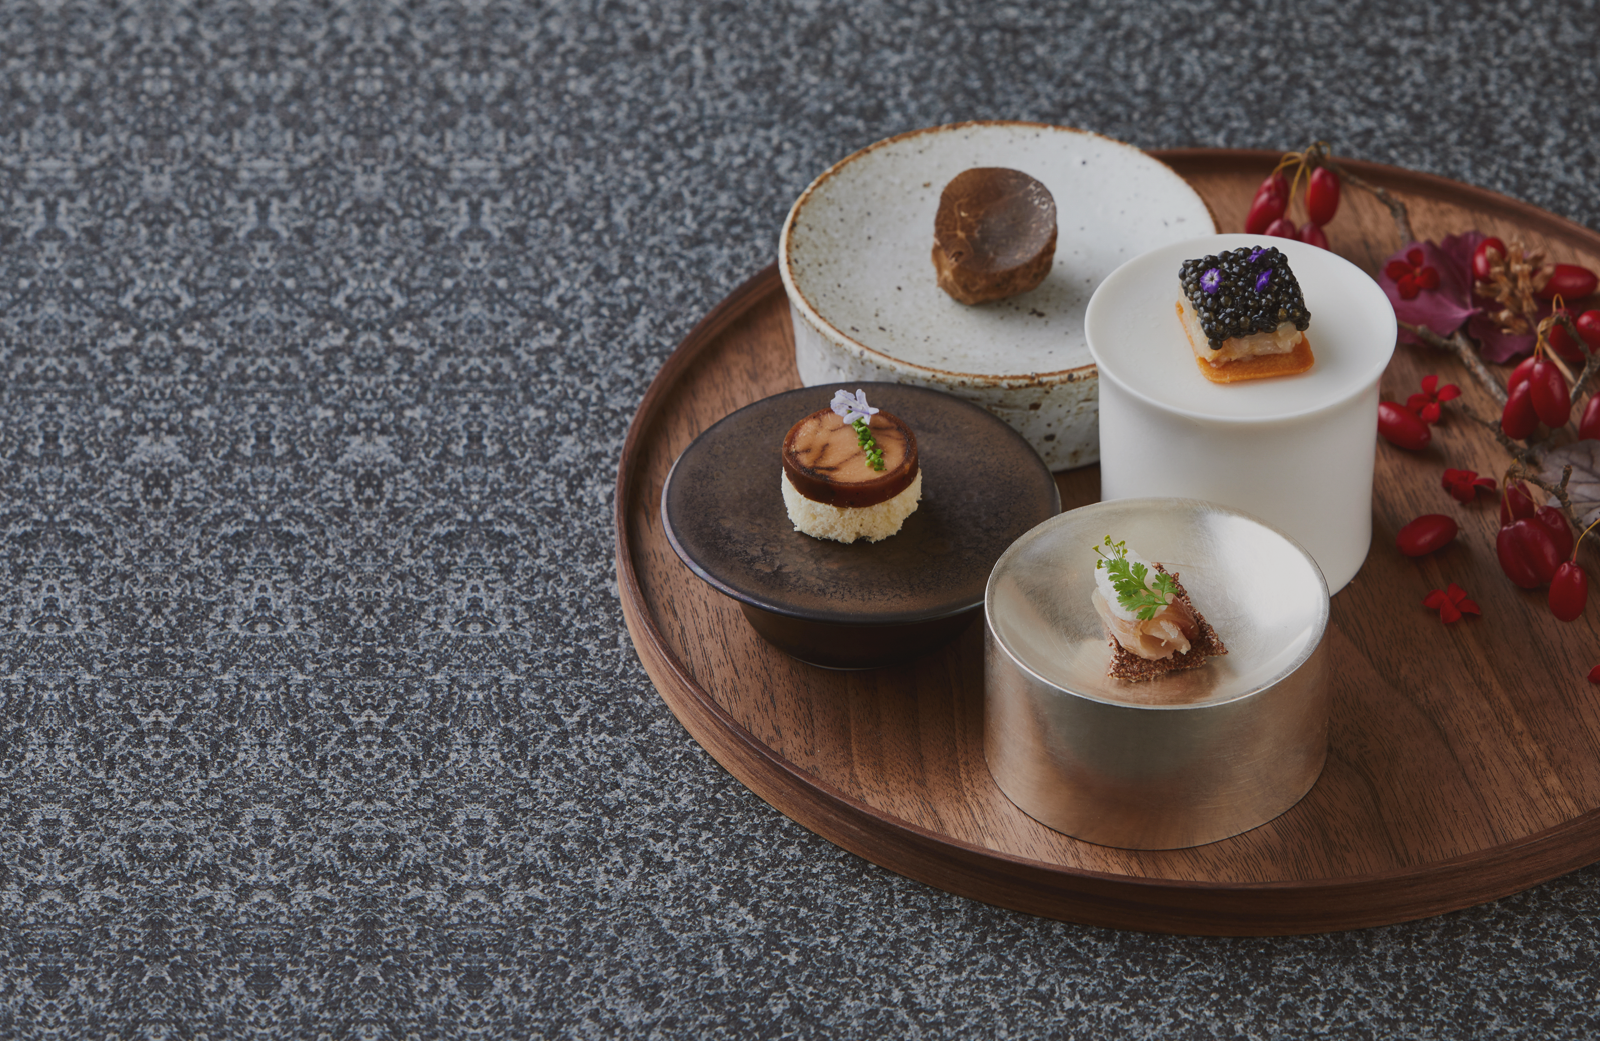 A wooden tray holding four small dishes each with a composed bite of food